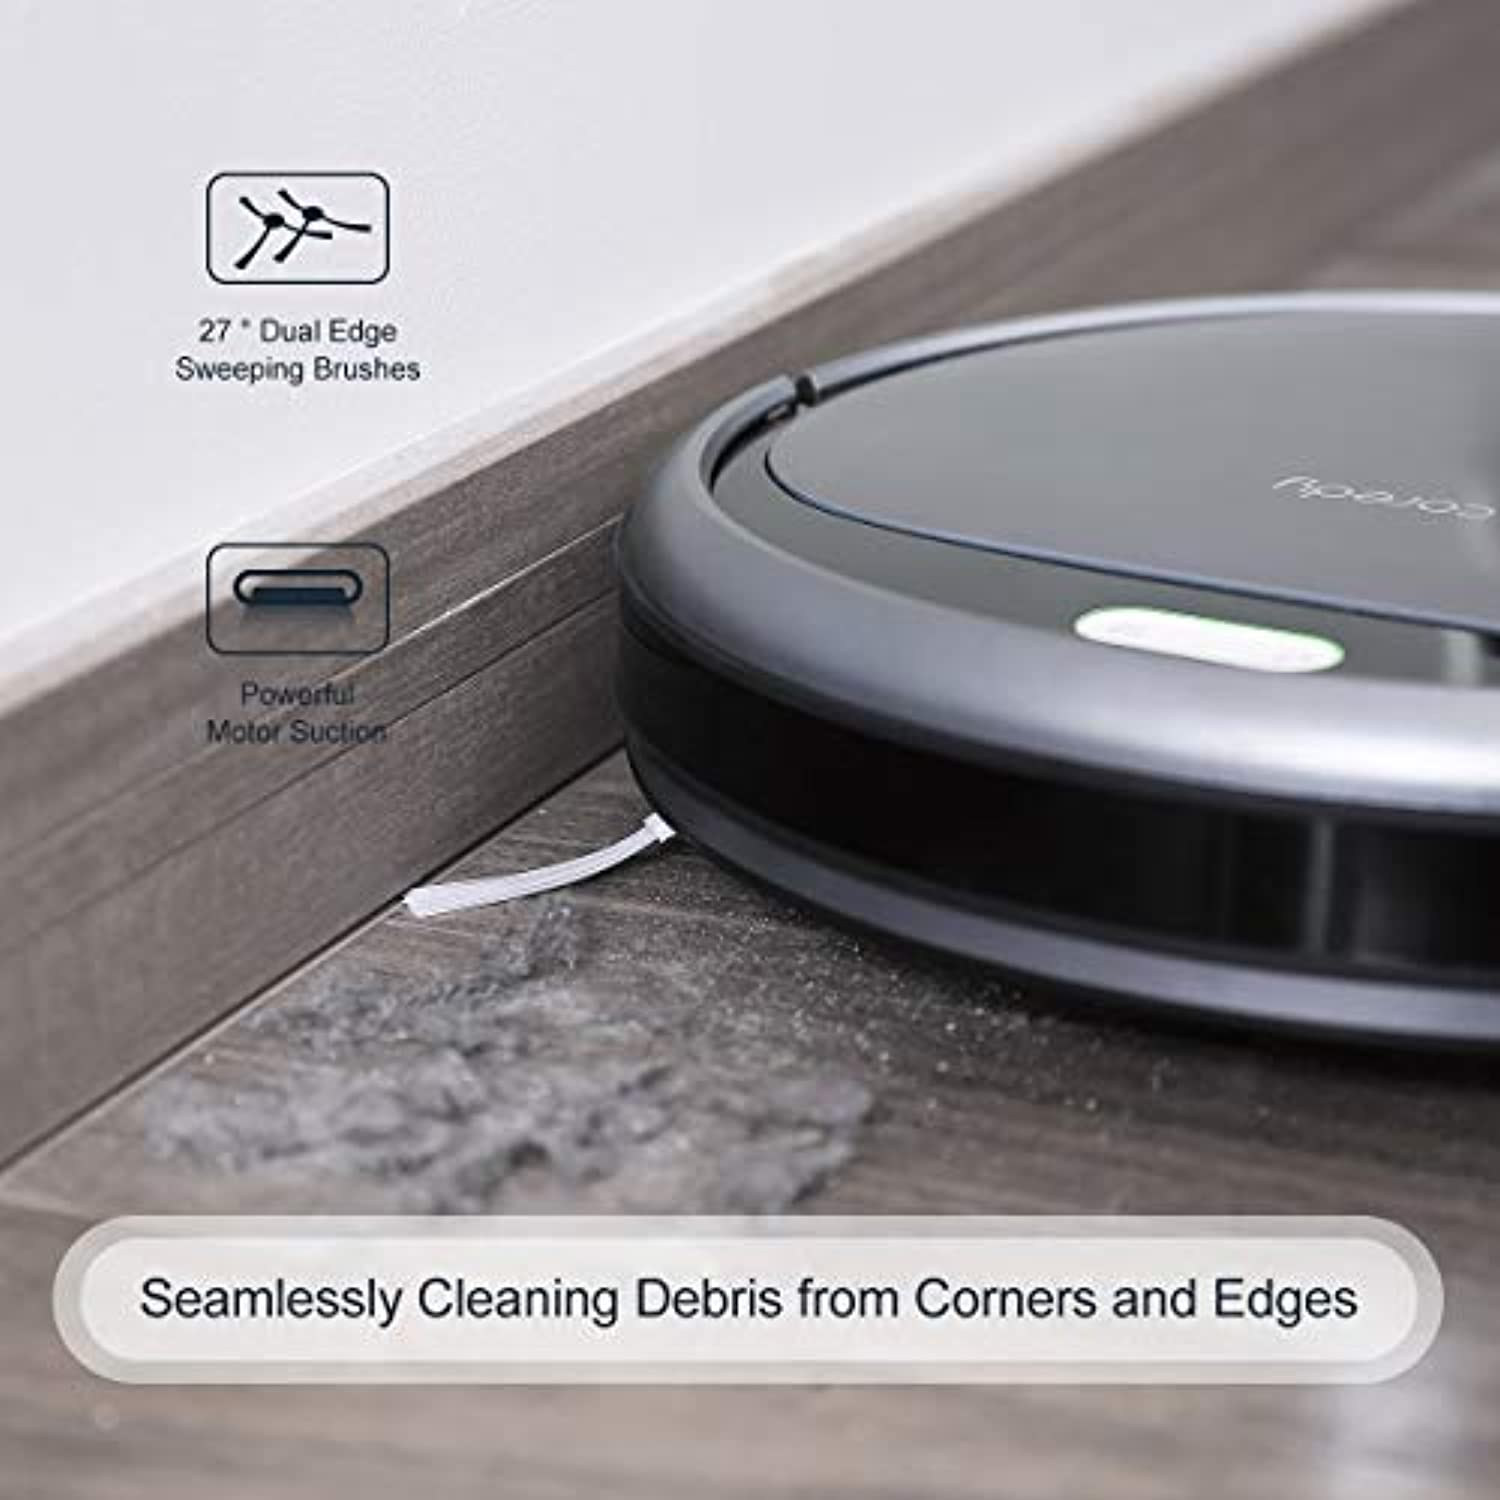 Classier: Buy Coredy Coredy Robot Vacuum Cleaner, 1400Pa Super-Strong Suction, Ultra Slim, Automatic Self-Charging Robotic Vacuum for Cleaning Hardwood Floors, Medium-Pile Carpets, Filter for Pet, Easy Schedule Cleaning